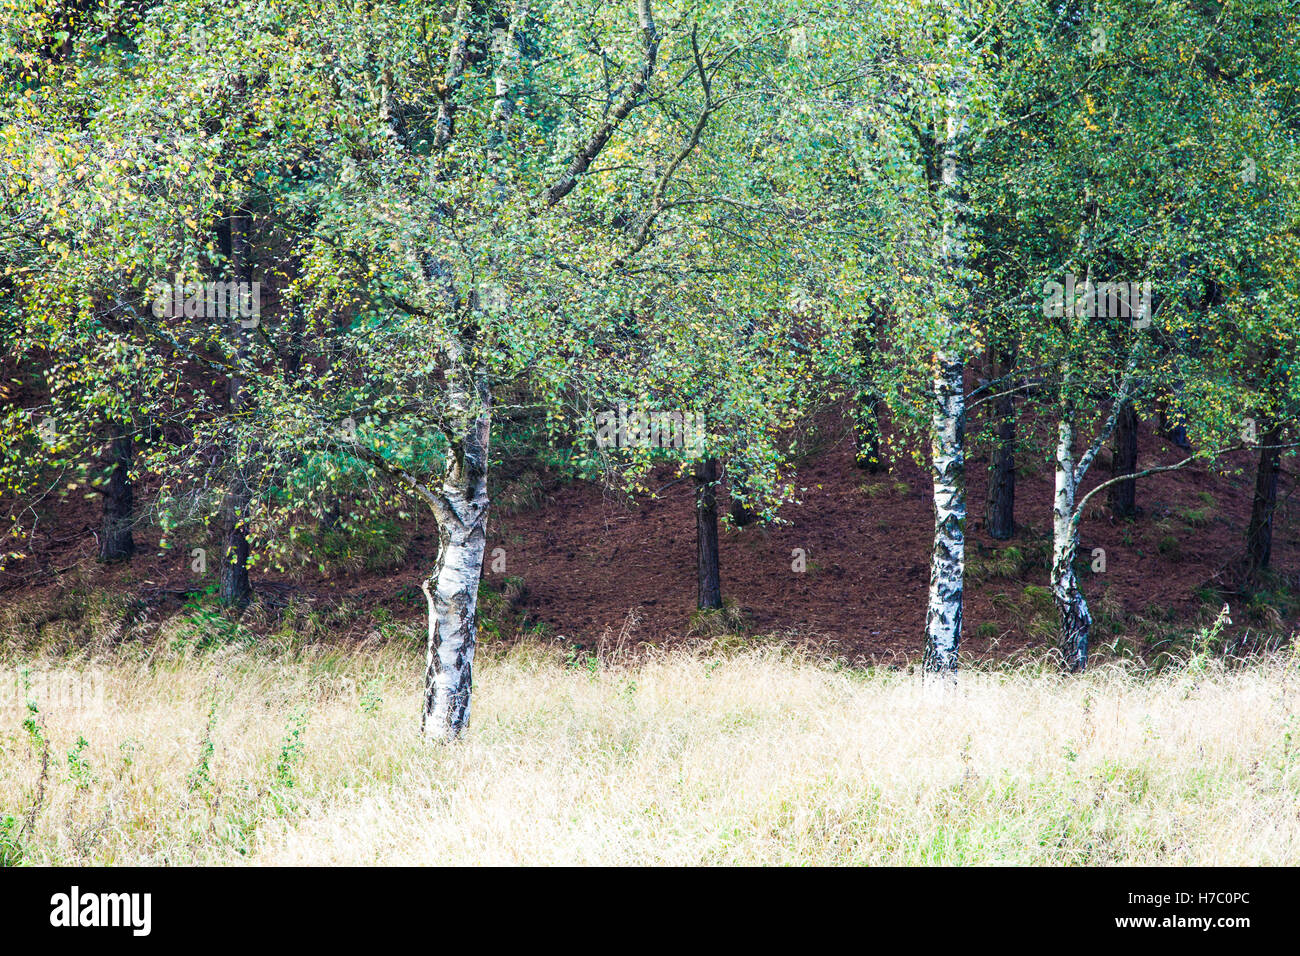 Autumnal silver birch trees, Betula pendula, in the Forest of Dean, Gloucestershire. - Stock Image